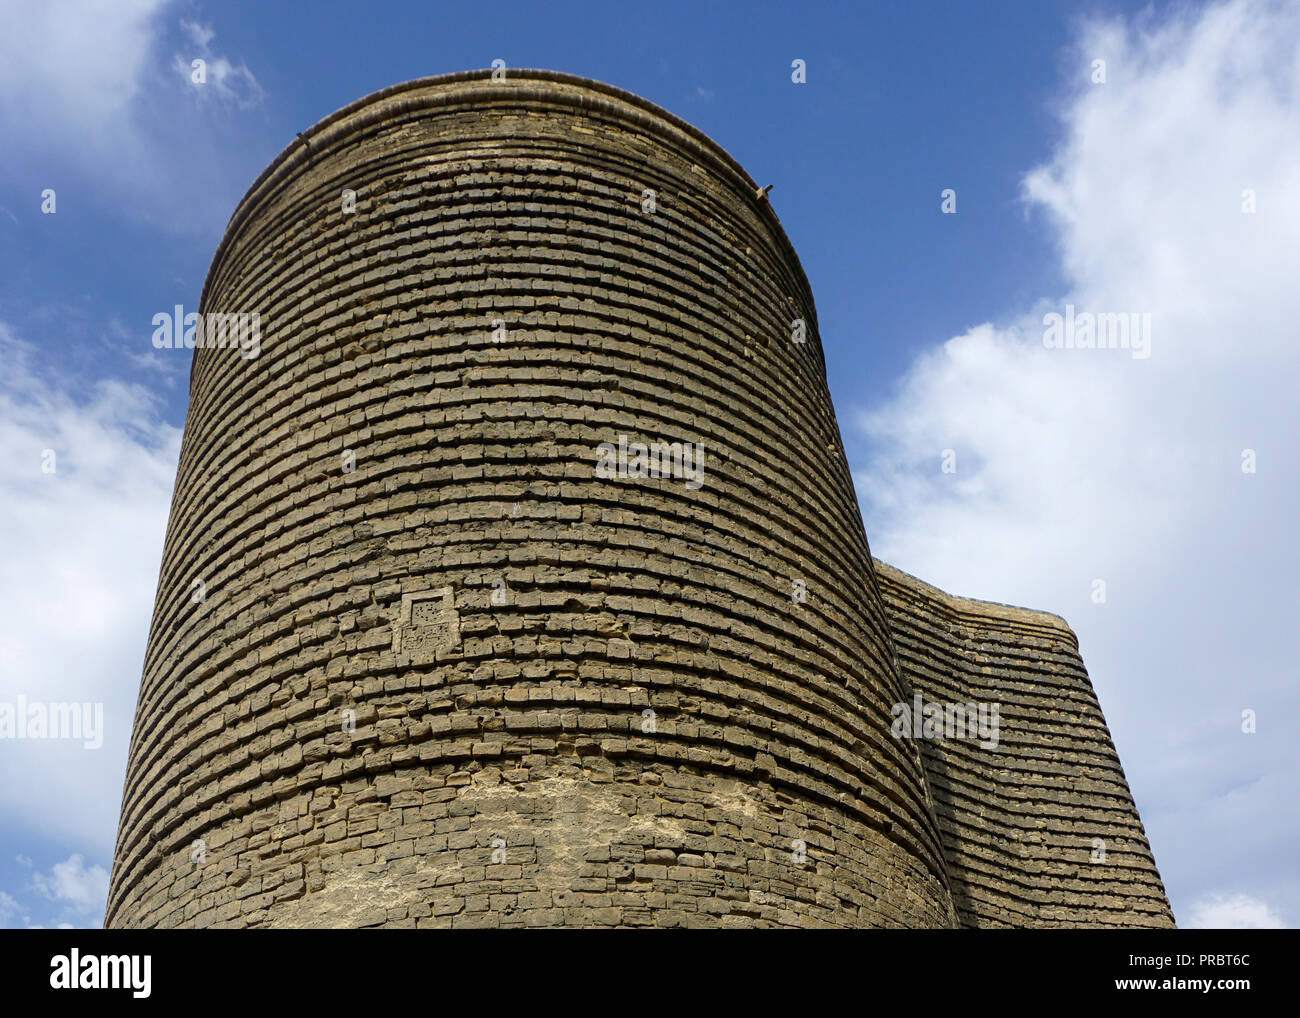 Baku Maiden Tower Sightseeing Spot in Summer Time. - Stock Image